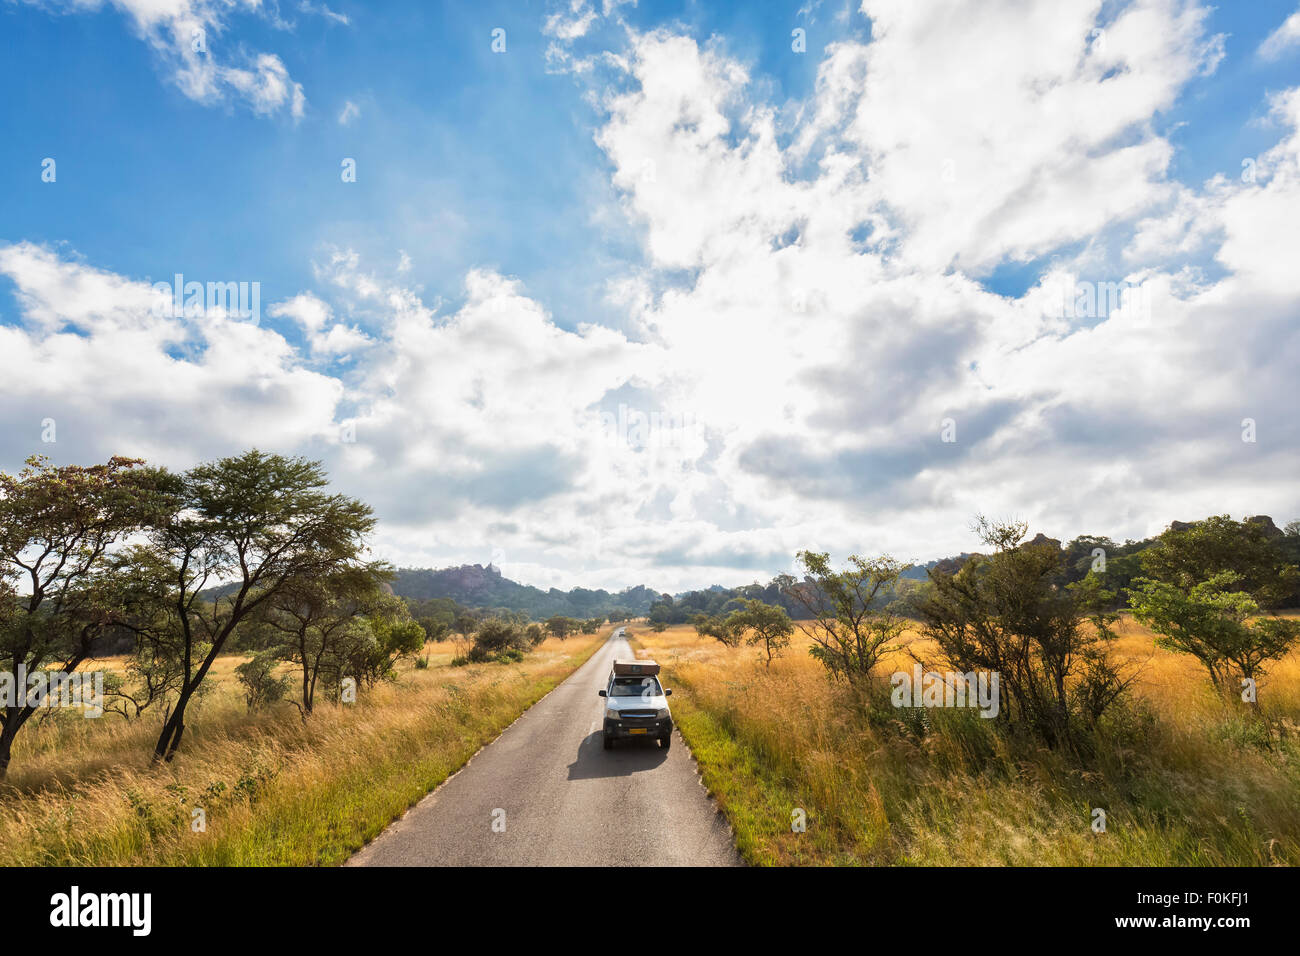 Africa, Zimbabwe, Matobo National Park, jeep with roof tent on the road - Stock Image